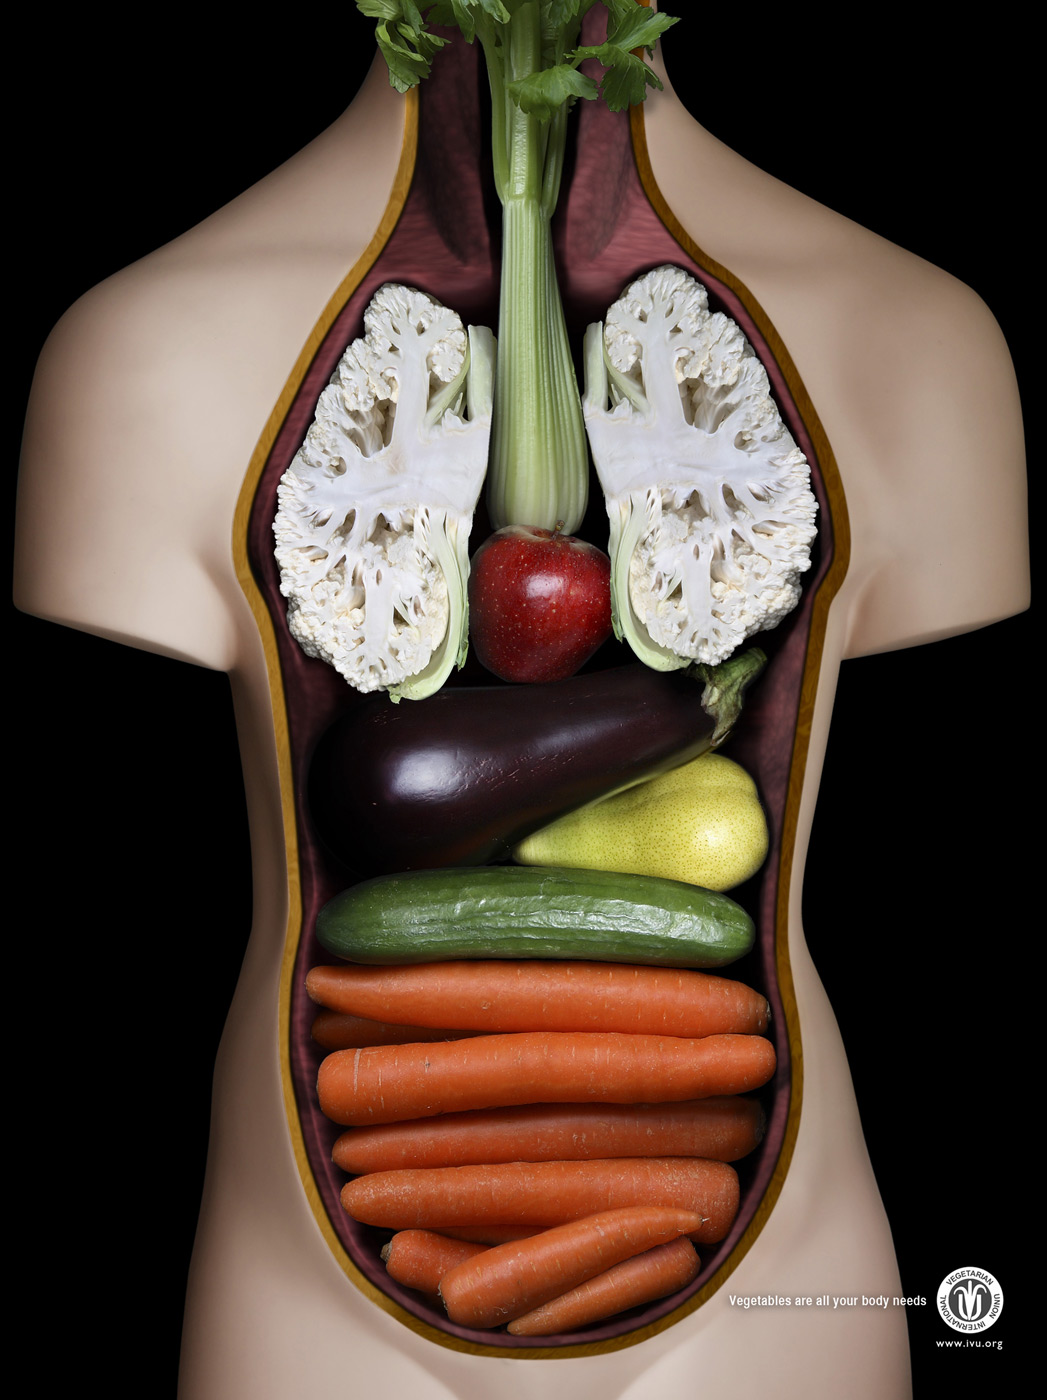 InternationalVegetarianUnion-JWT-Kuwait